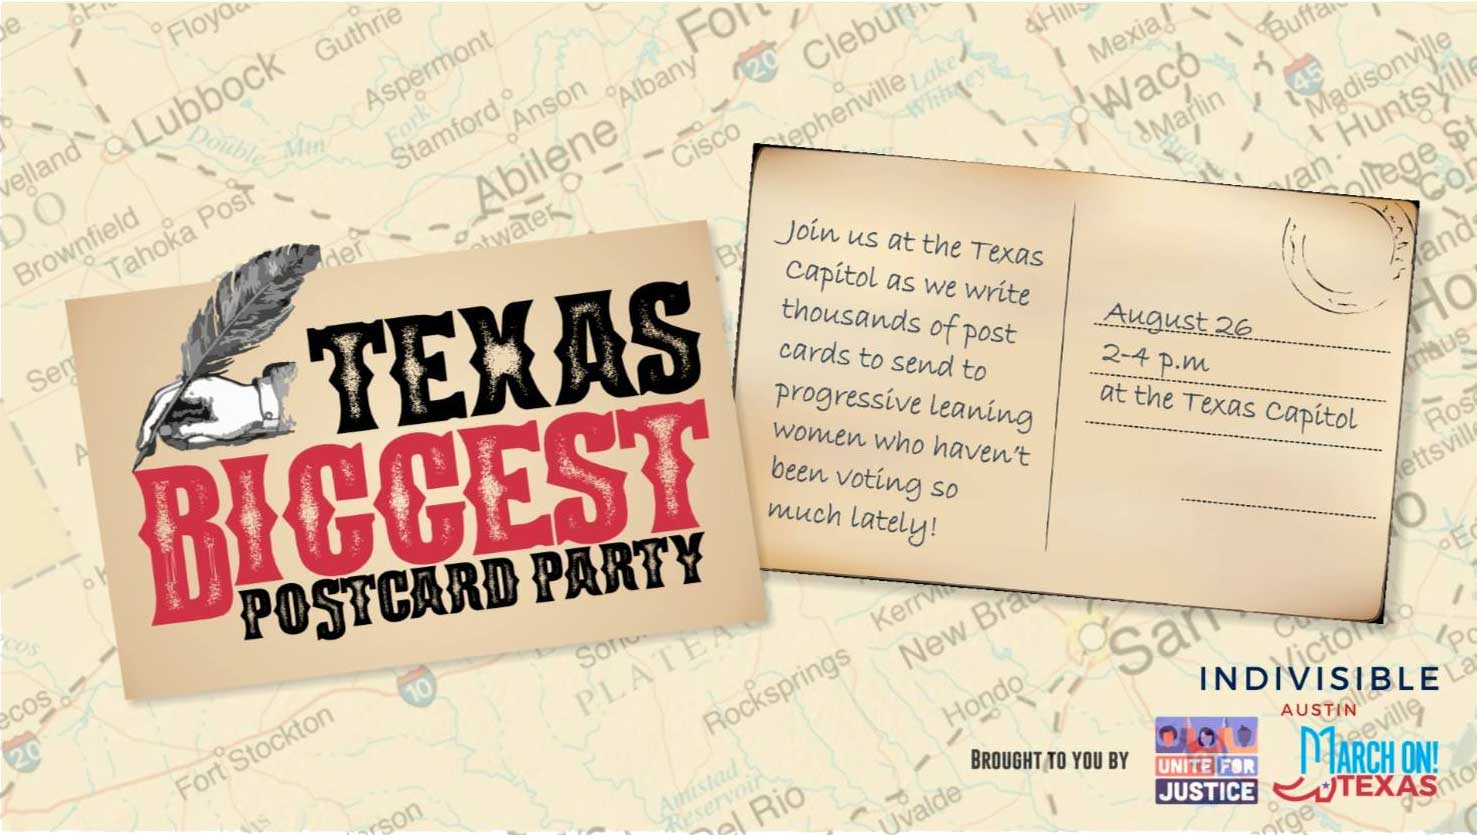 Texas's biggest postcard party